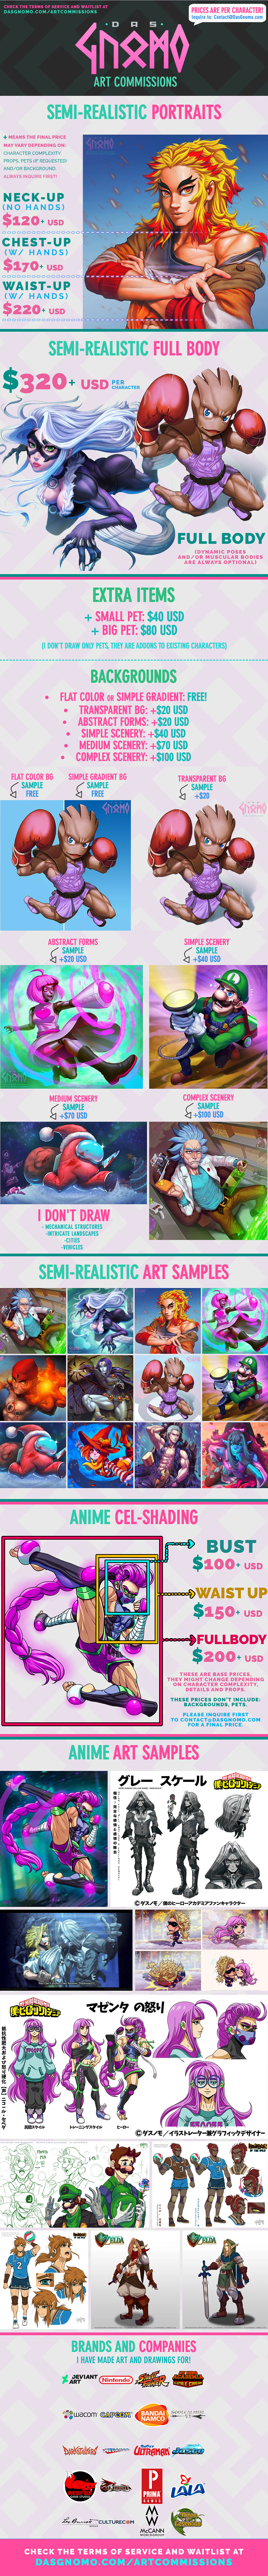 DasGnomo Art Commissions - Read TOS first